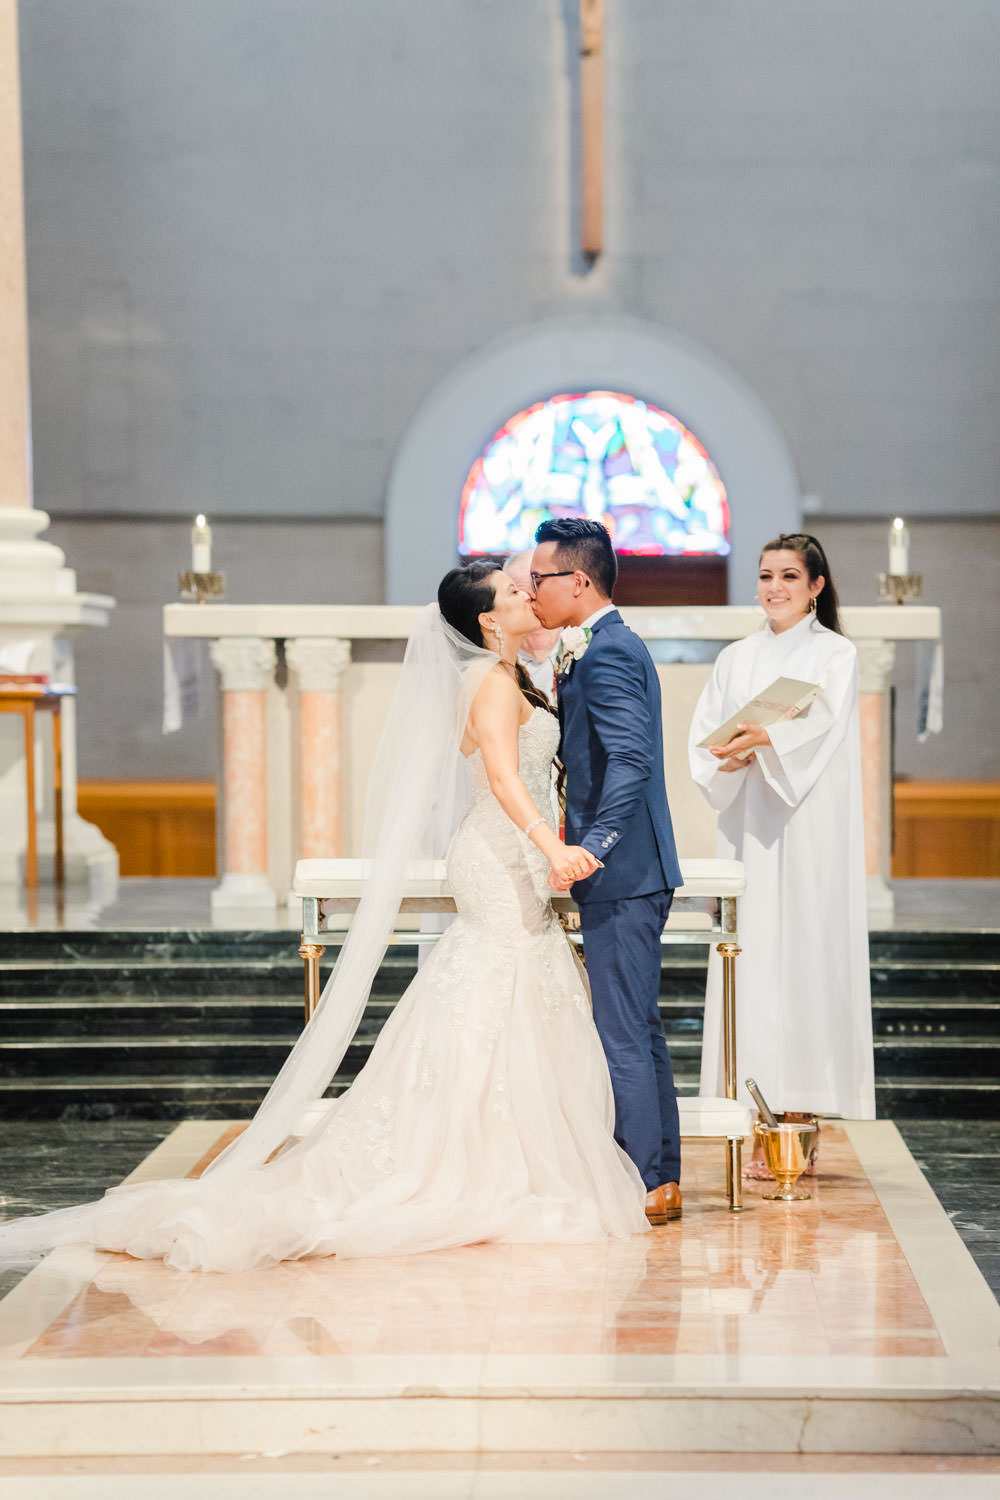 Immaculata USD wedding ceremony, Cavin Elizabeth Photography